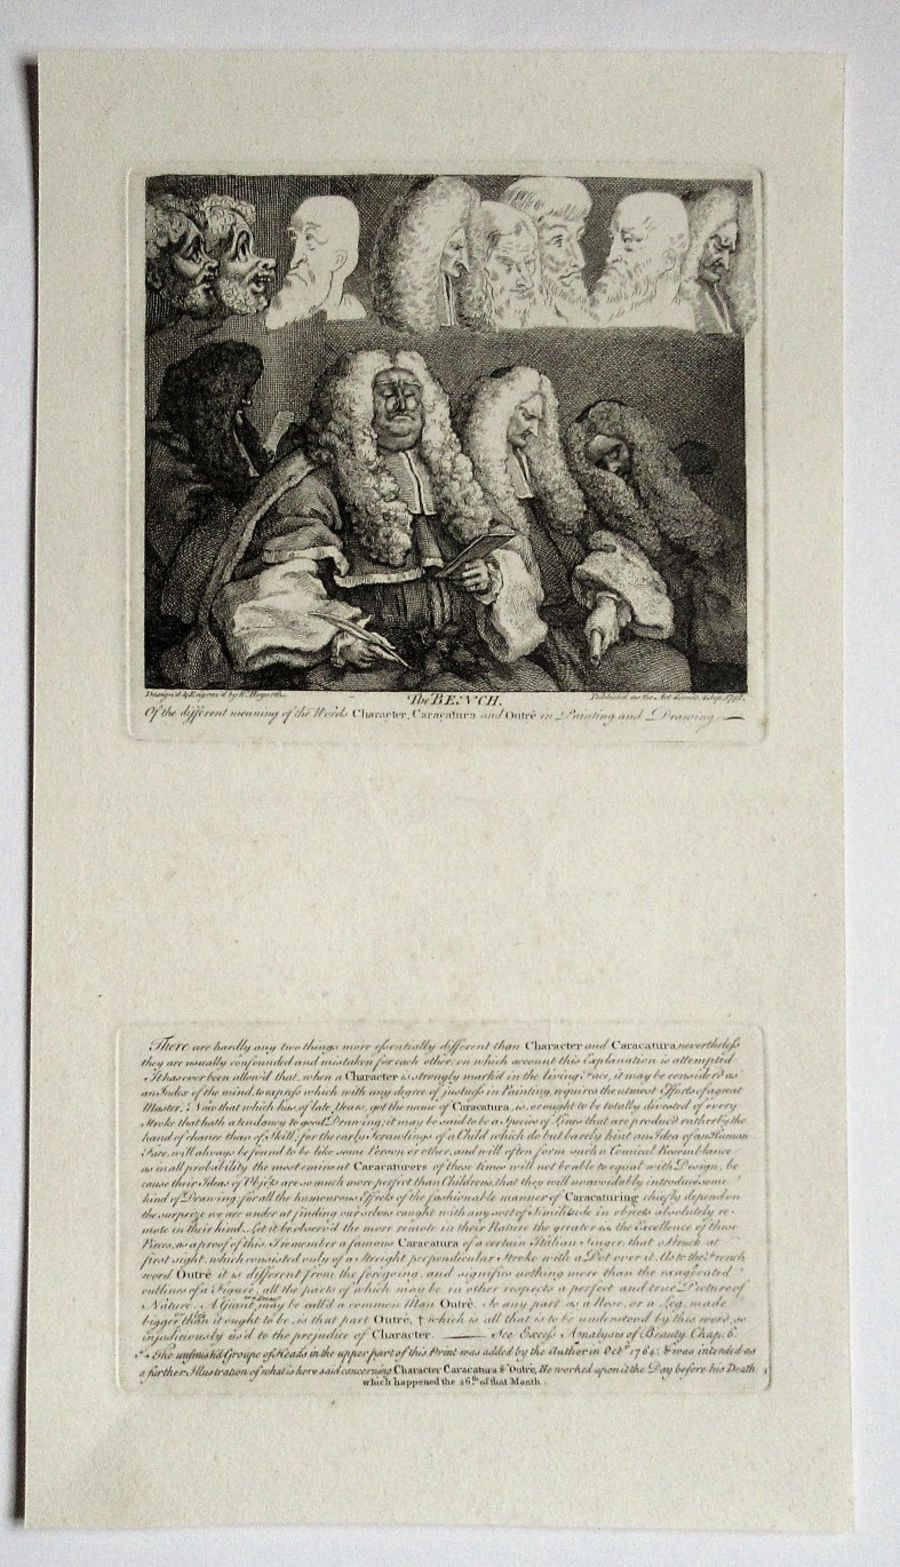 William Hogarth, The Bench, print with letterpress, engraved 1758